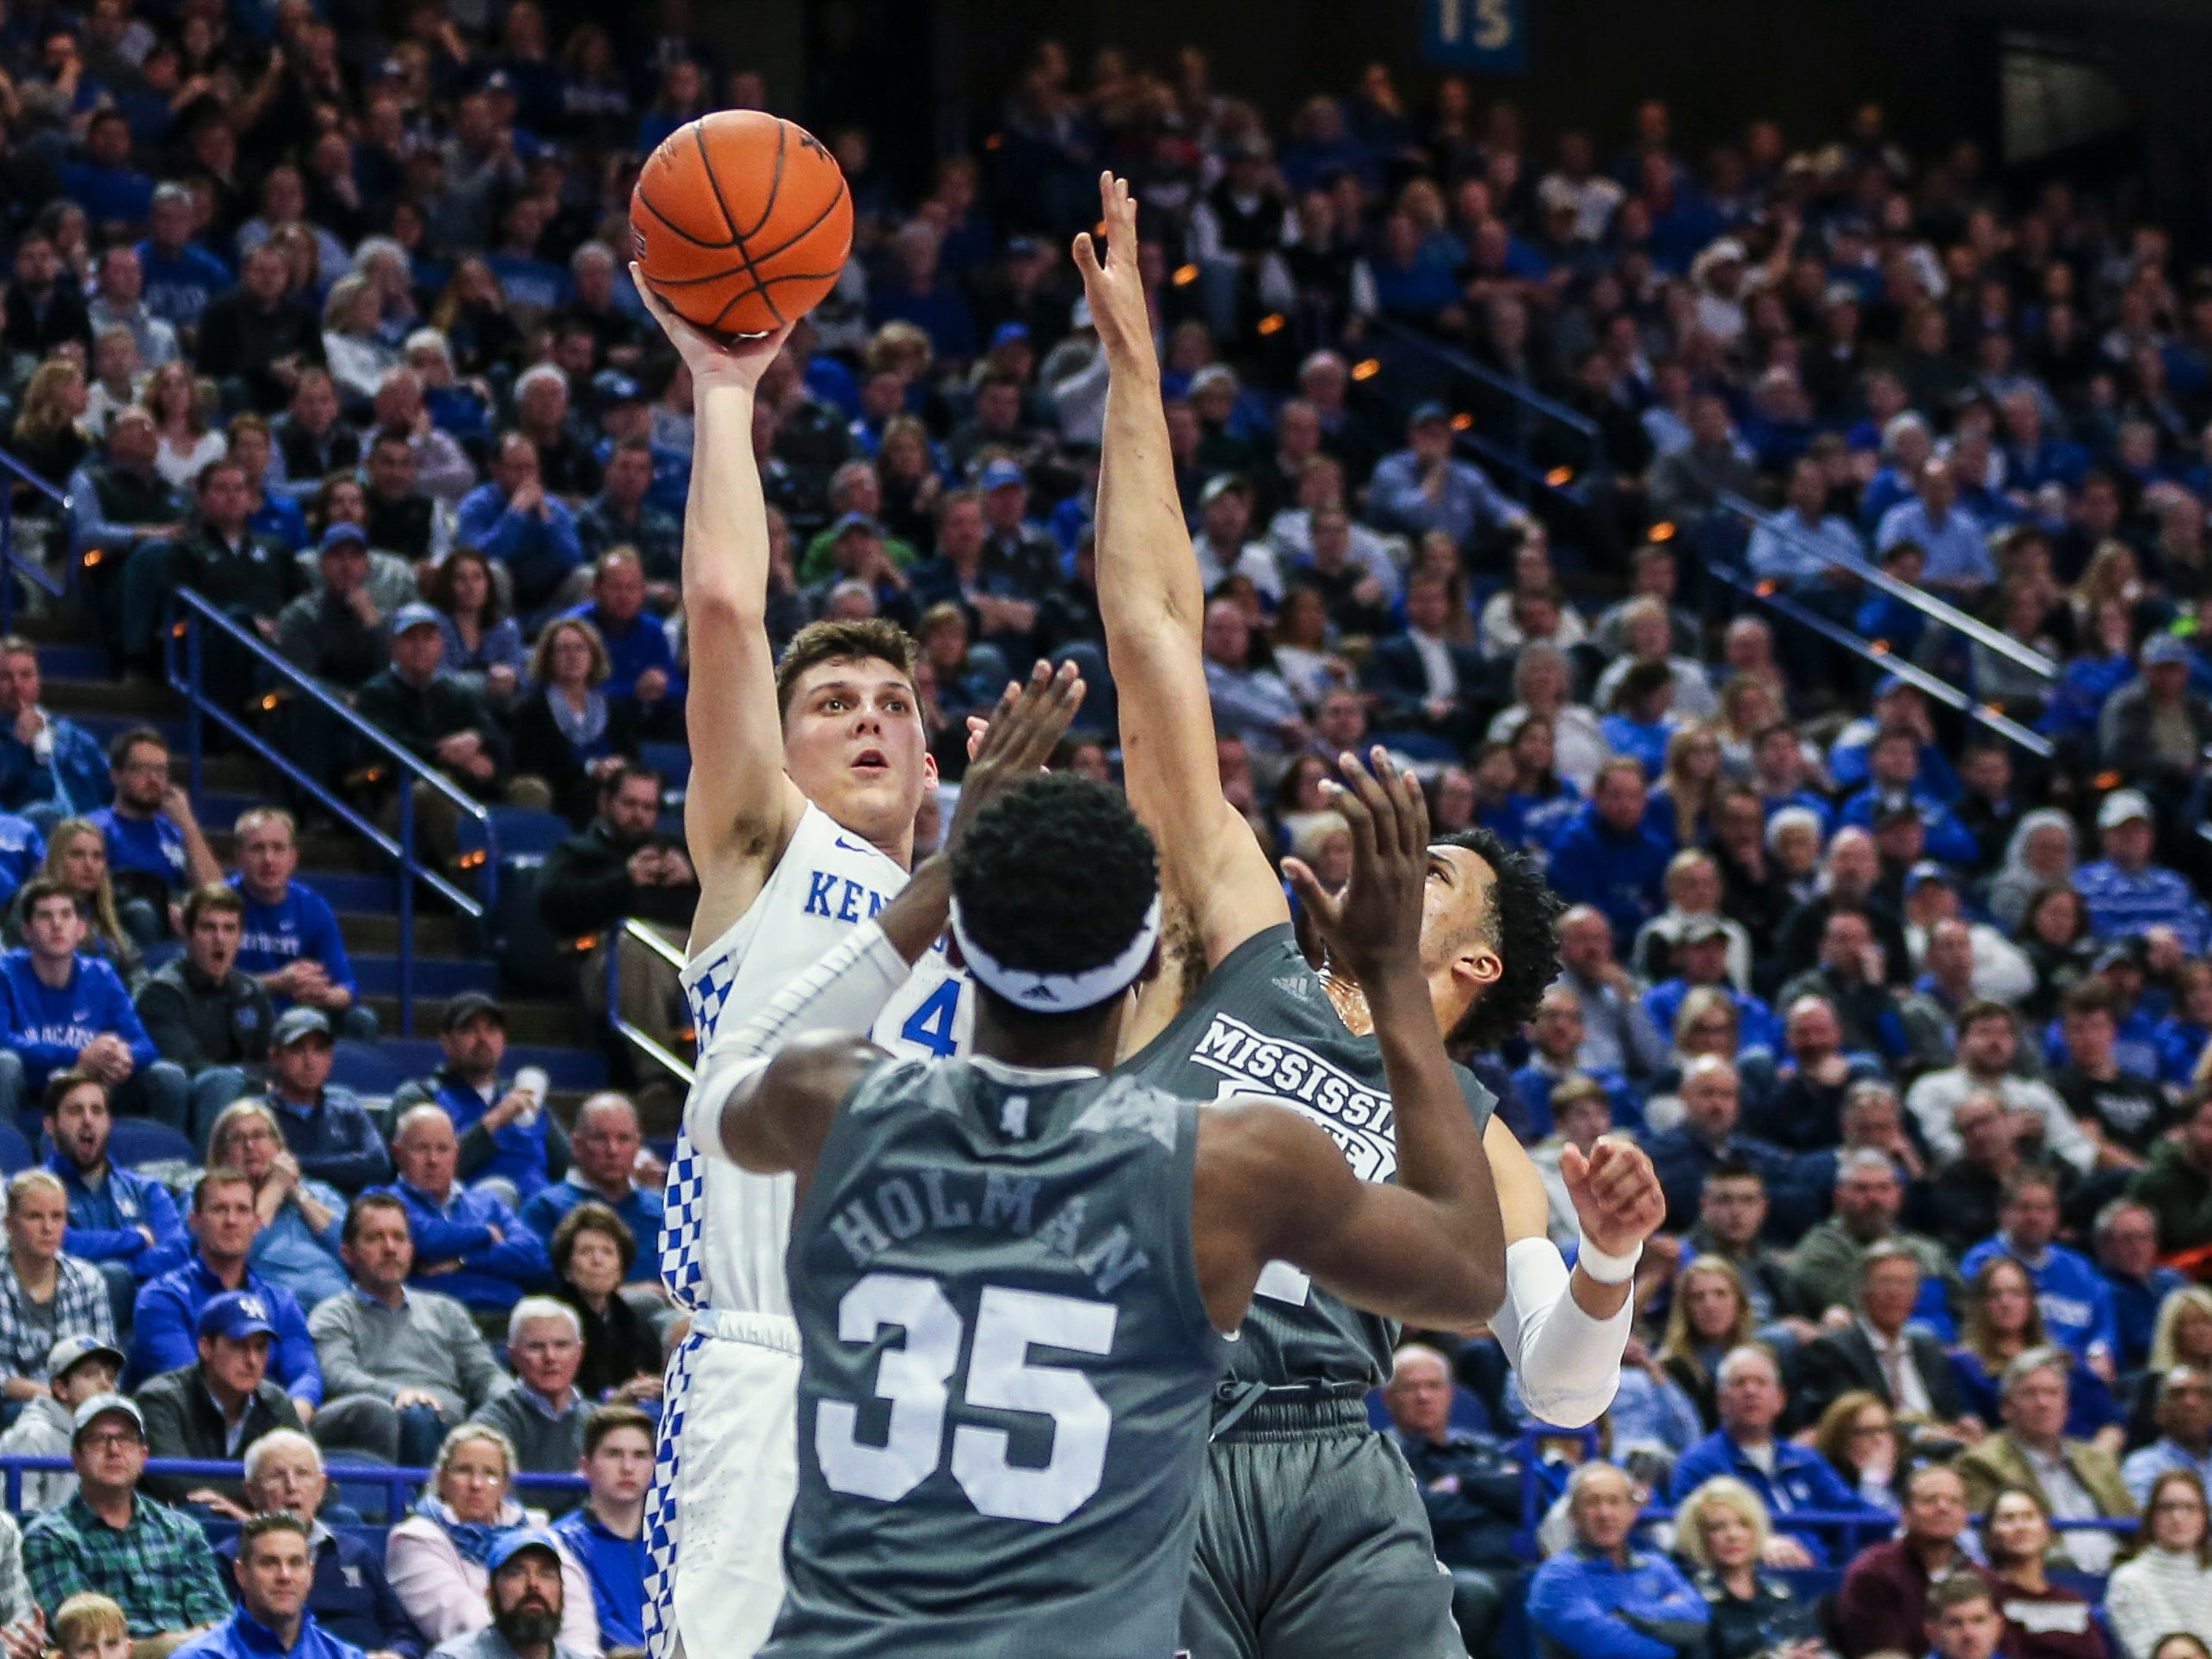 Kentucky's Tyler Herro shoots over Mississippi State during the Wildcats' 76-55 win Tuesday night at Rupp Arena in Lexington. Herro finished with 18 points and three-for-three in three-point shots.